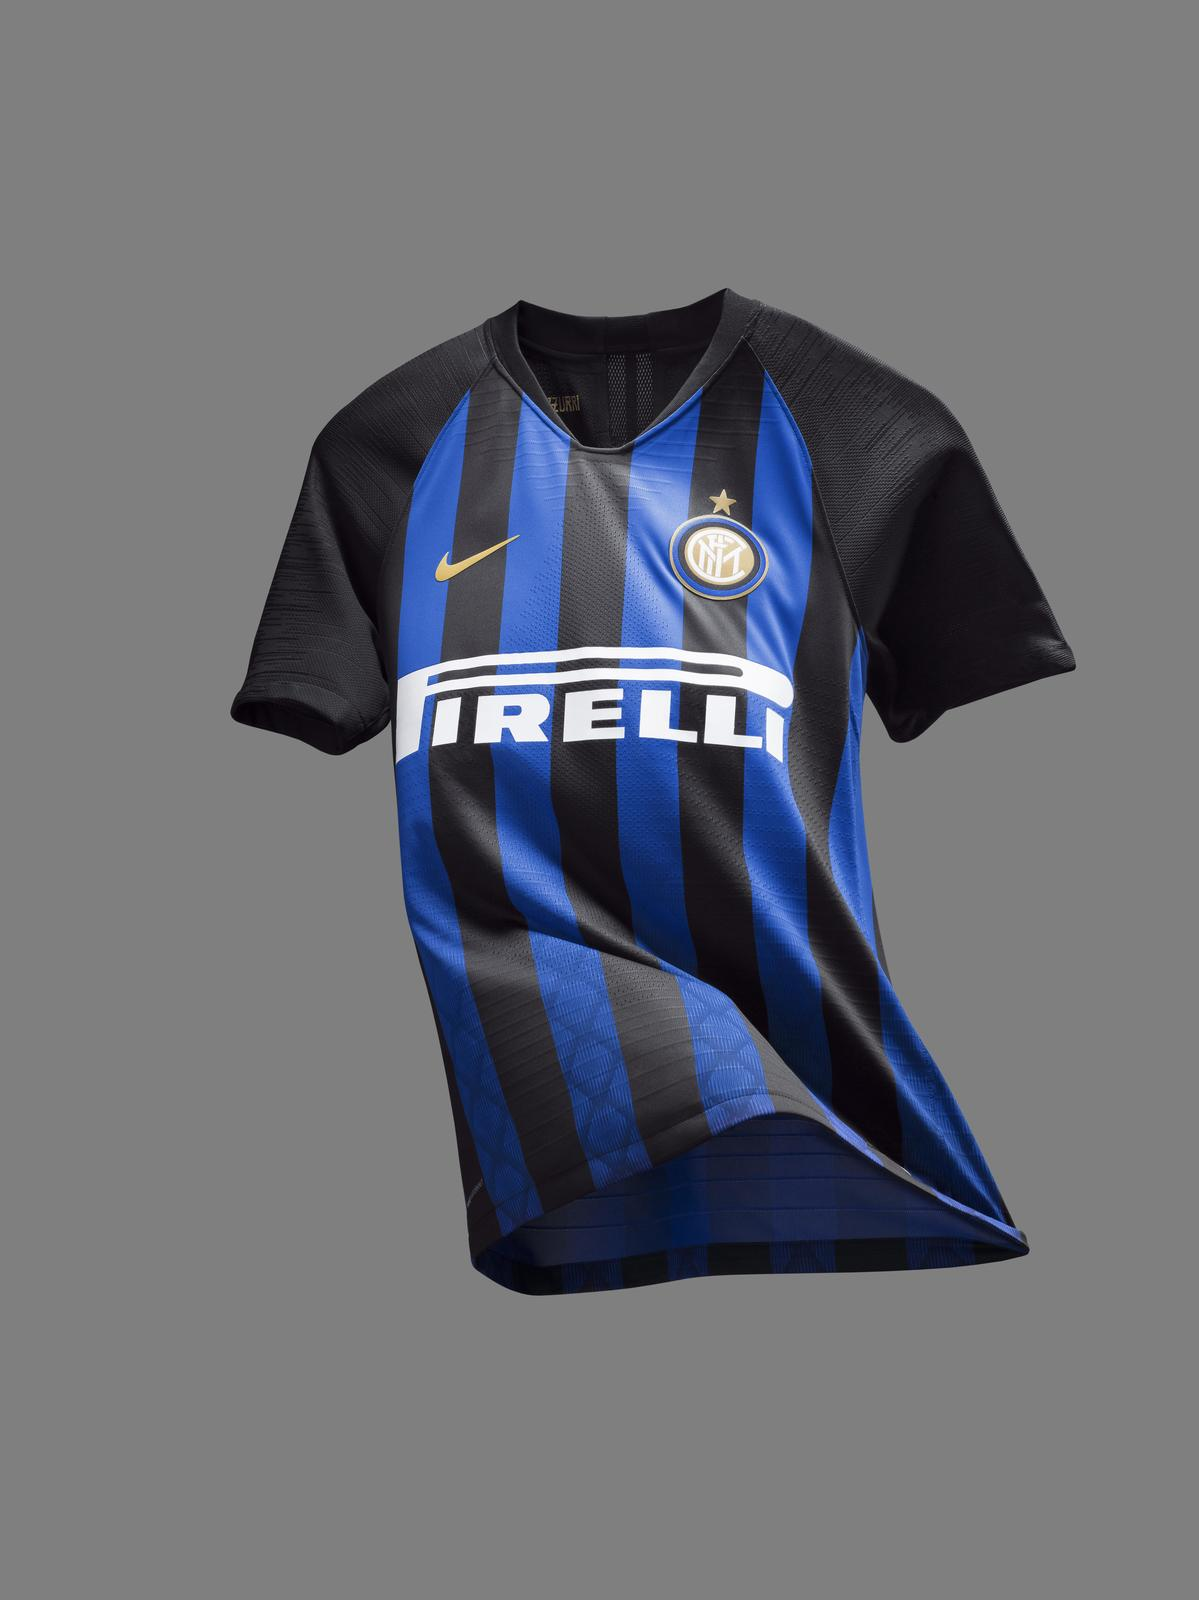 Inter Milan and Nike Celebrate 20 Years of Partnership 0 a52ae6442